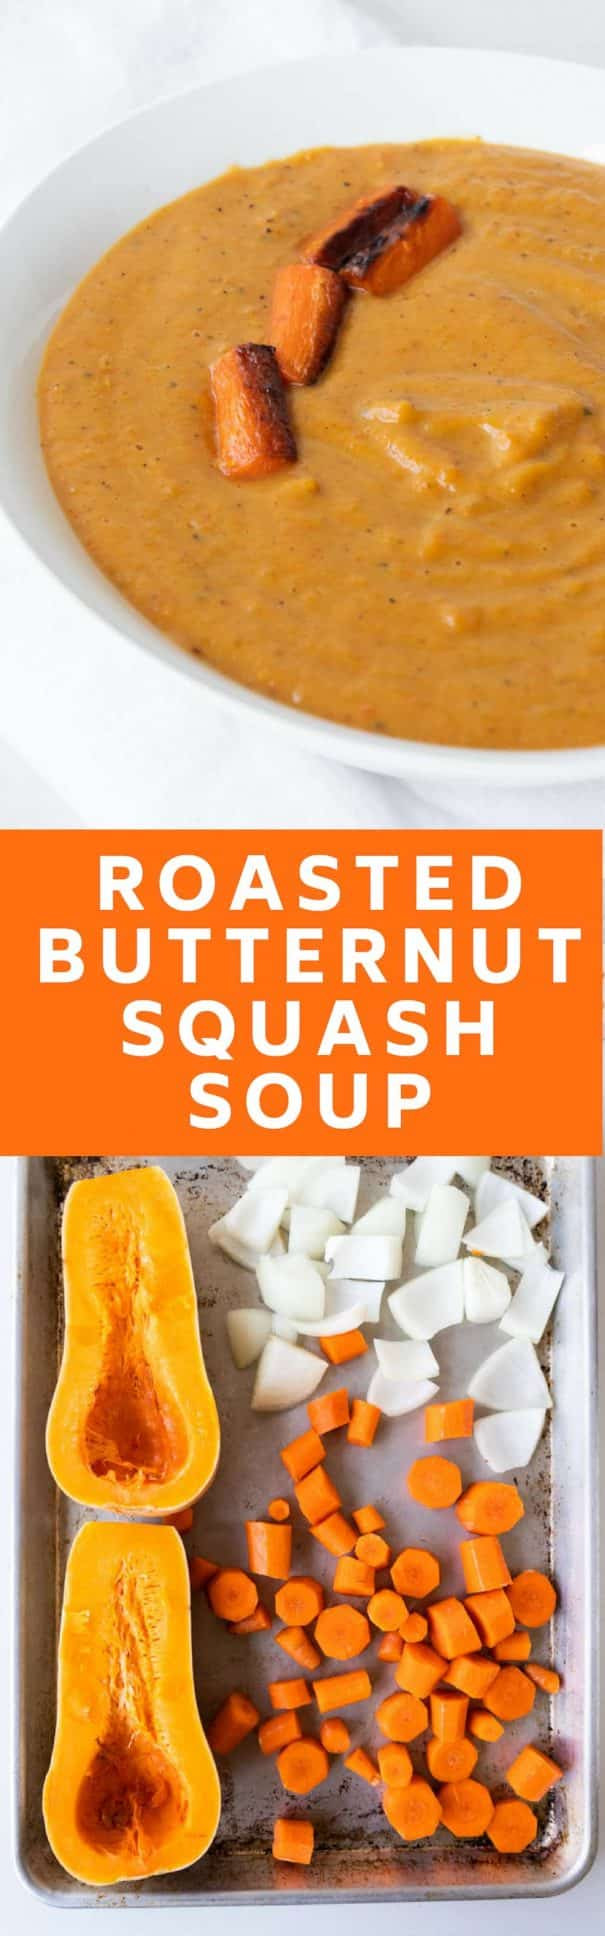 Roasted Butternut Squash Soup Recipe Healthy And Easy To Make